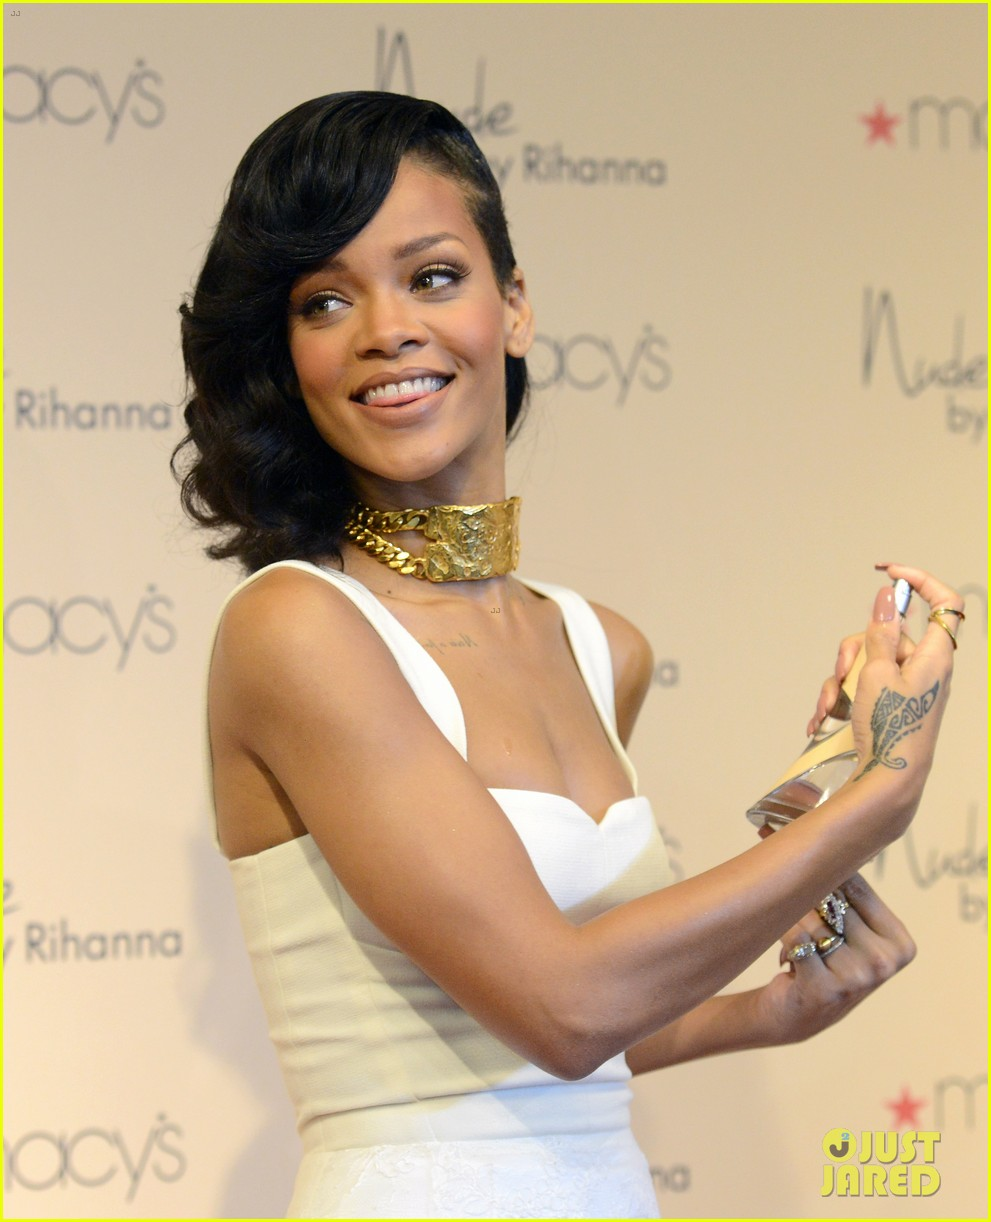 Rihanna Nude By Fragrance Launch